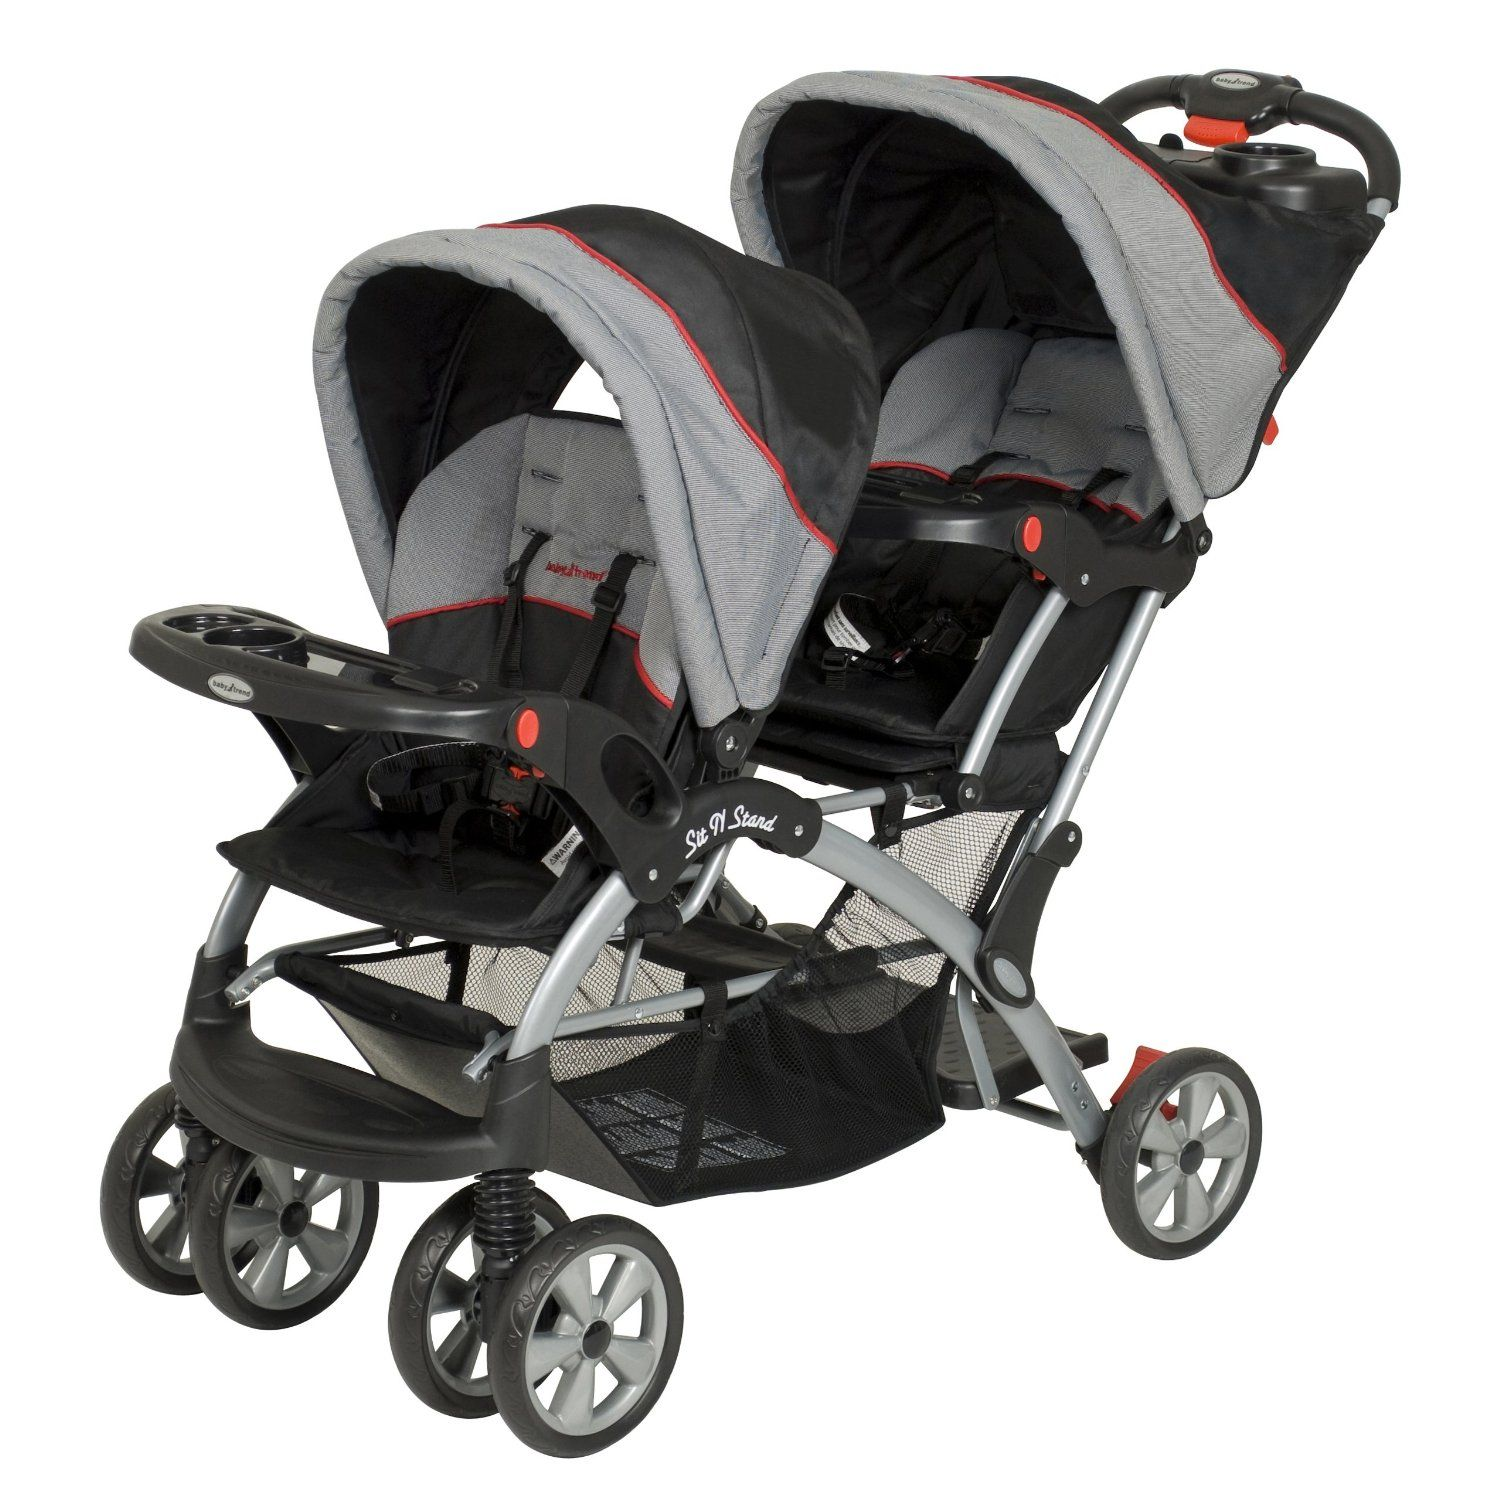 Baby Trend Double Stroller Millennium. Fits two infant